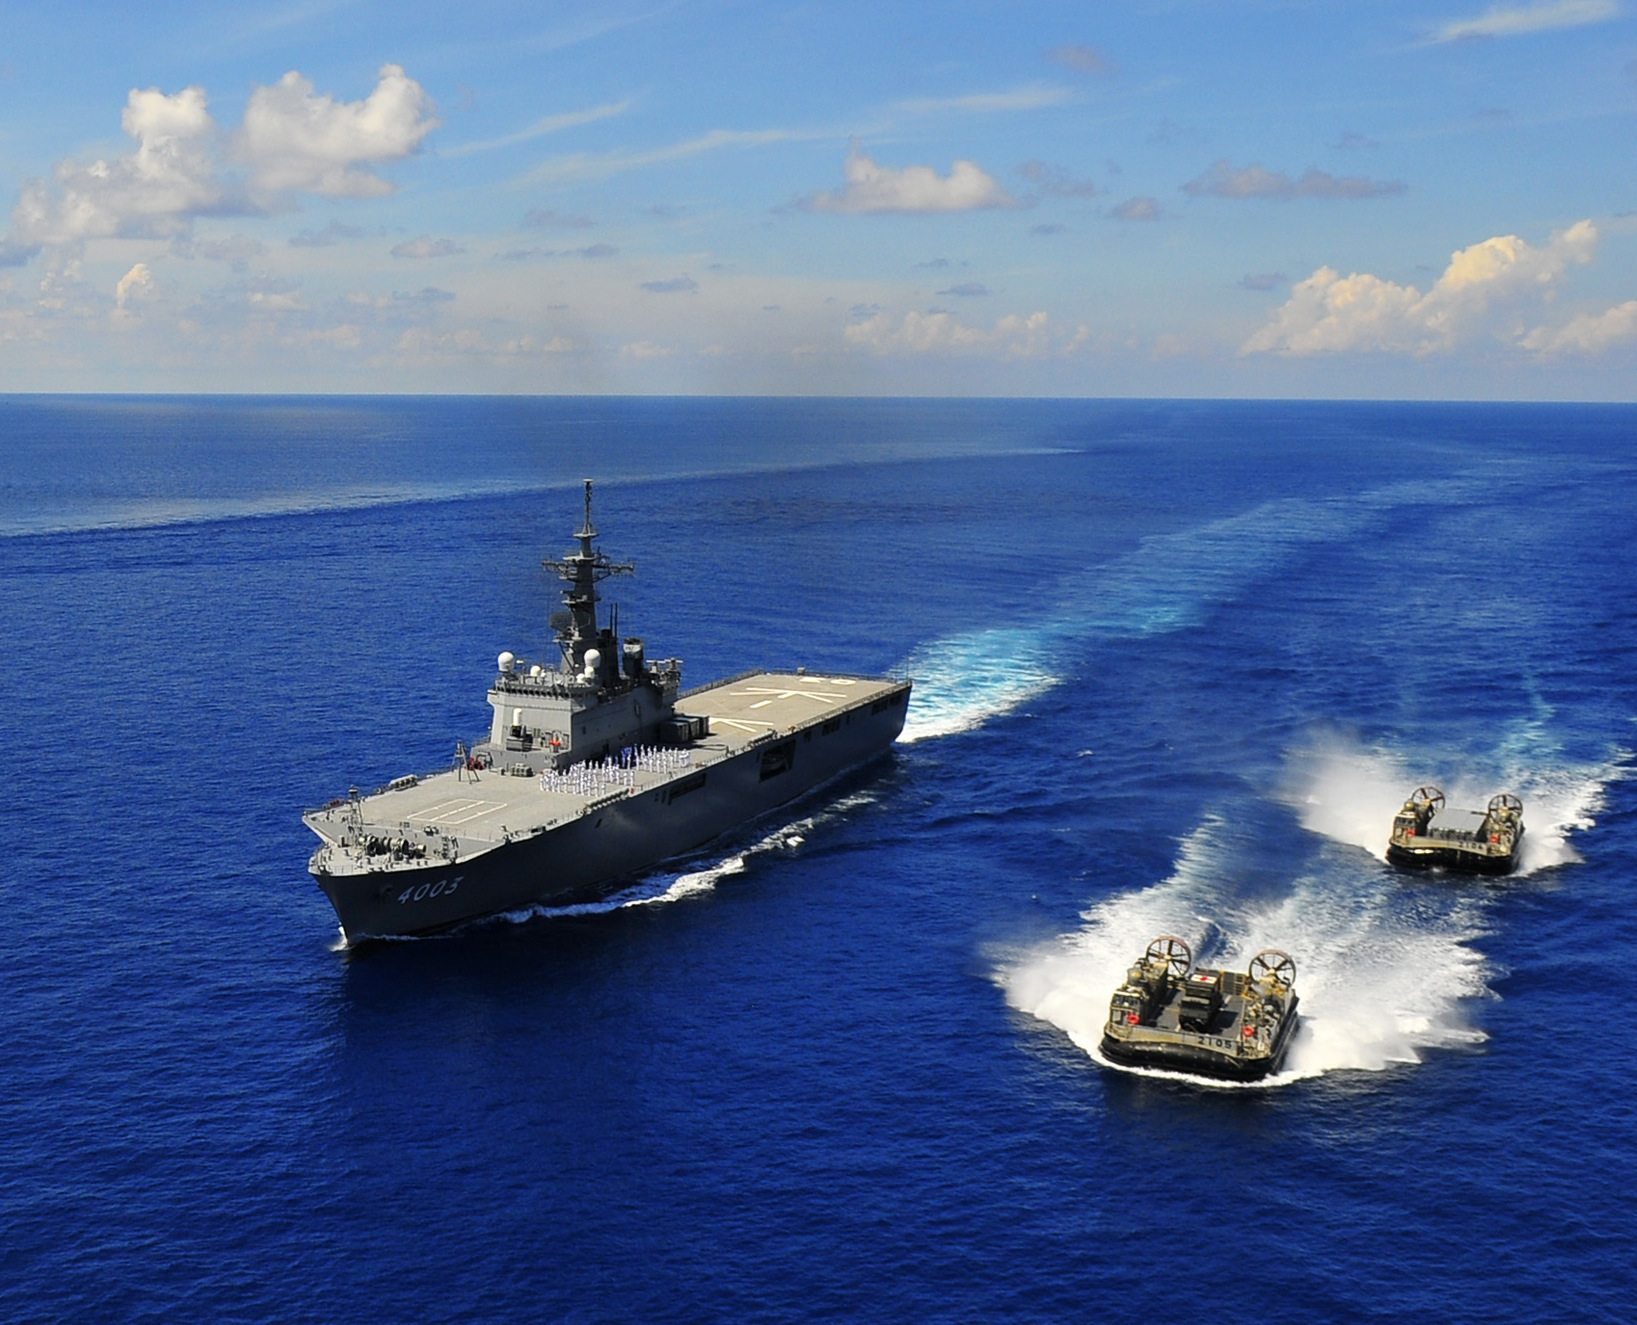 Osumi-class amphibious assault ship JDS Kunisaki (LST 4003), center, and two landing craft air cushions assigned to Kunisaki in 2010. US Navy Photo